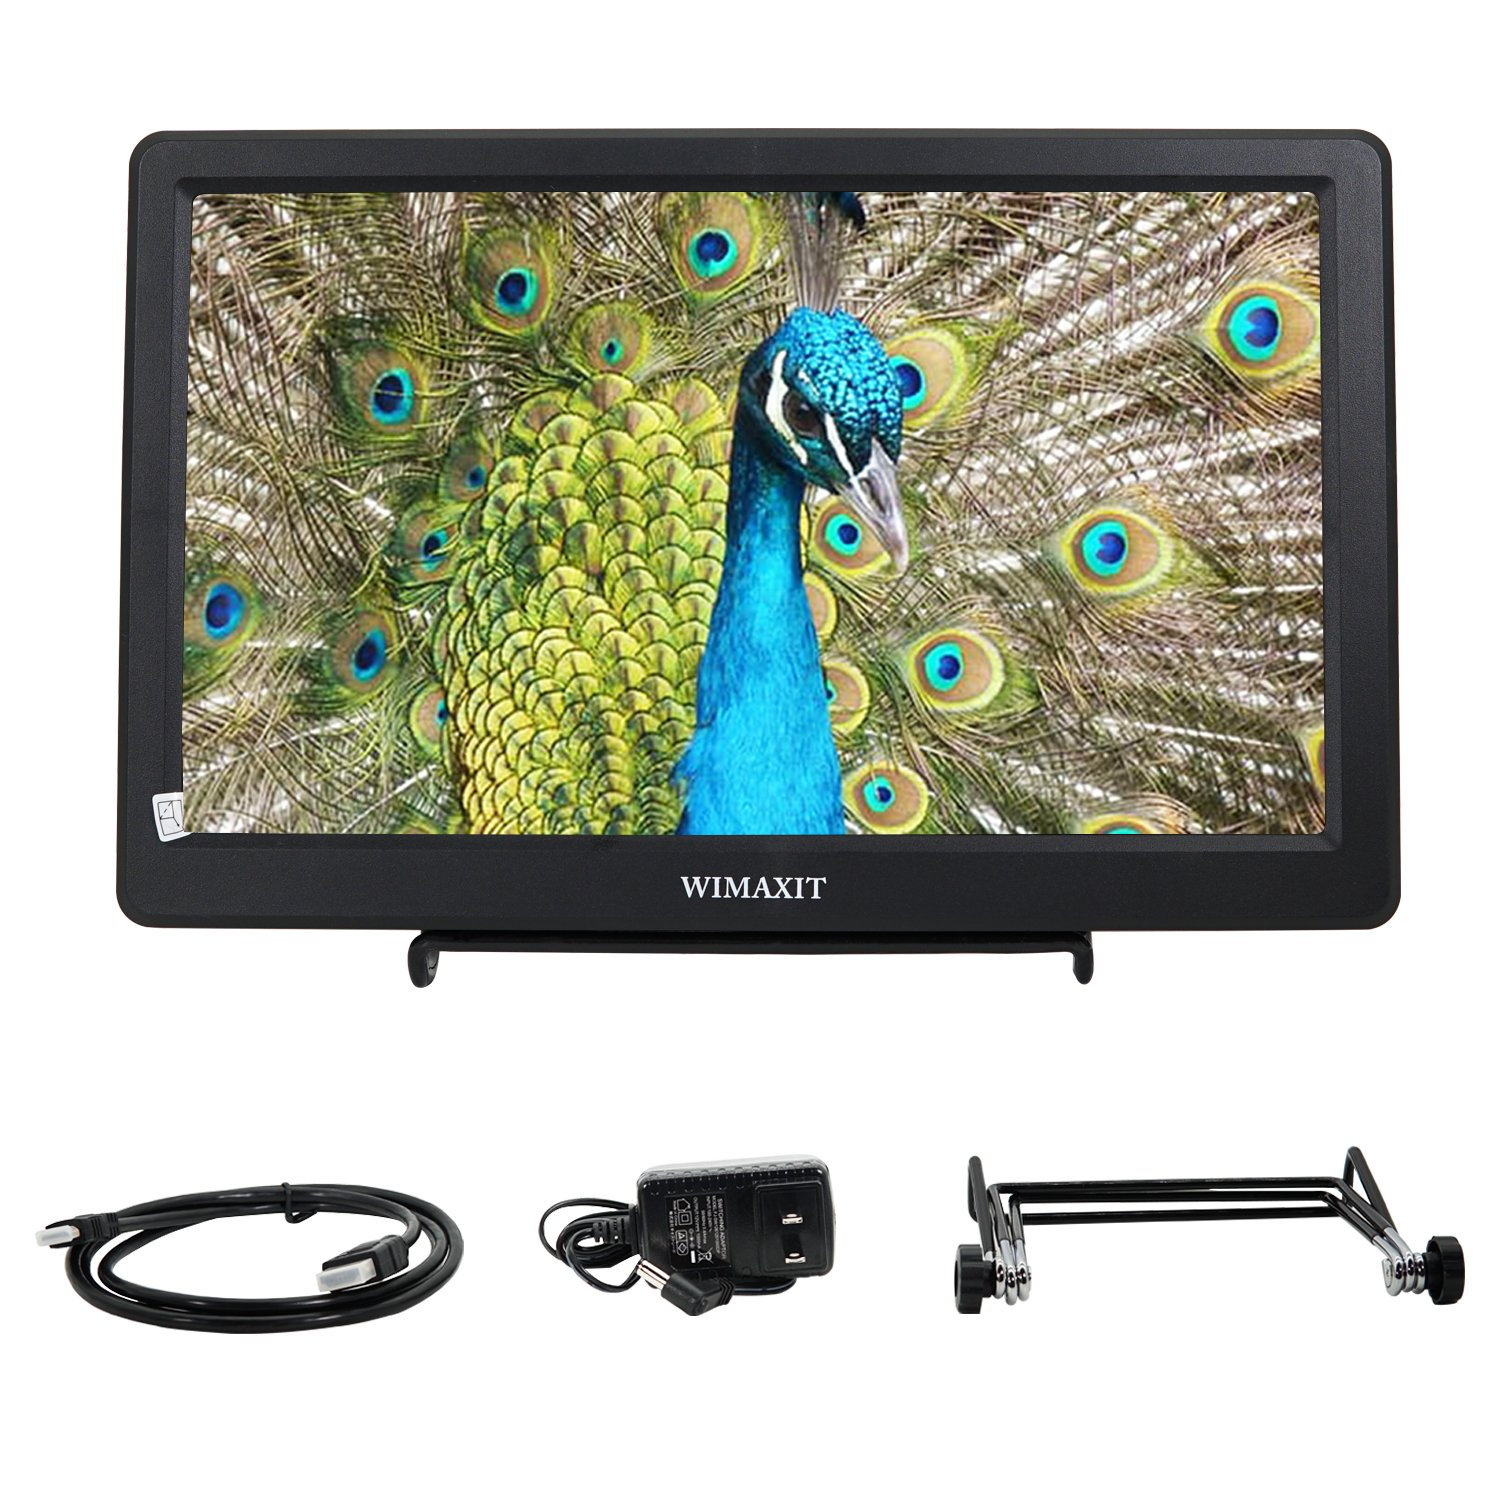 WIMAXIT 10.1 inch HDMI VGA Full HD IPS 1920x1080 Resolution Monitor for PC,Camera,CCTV Surveillance Monitors